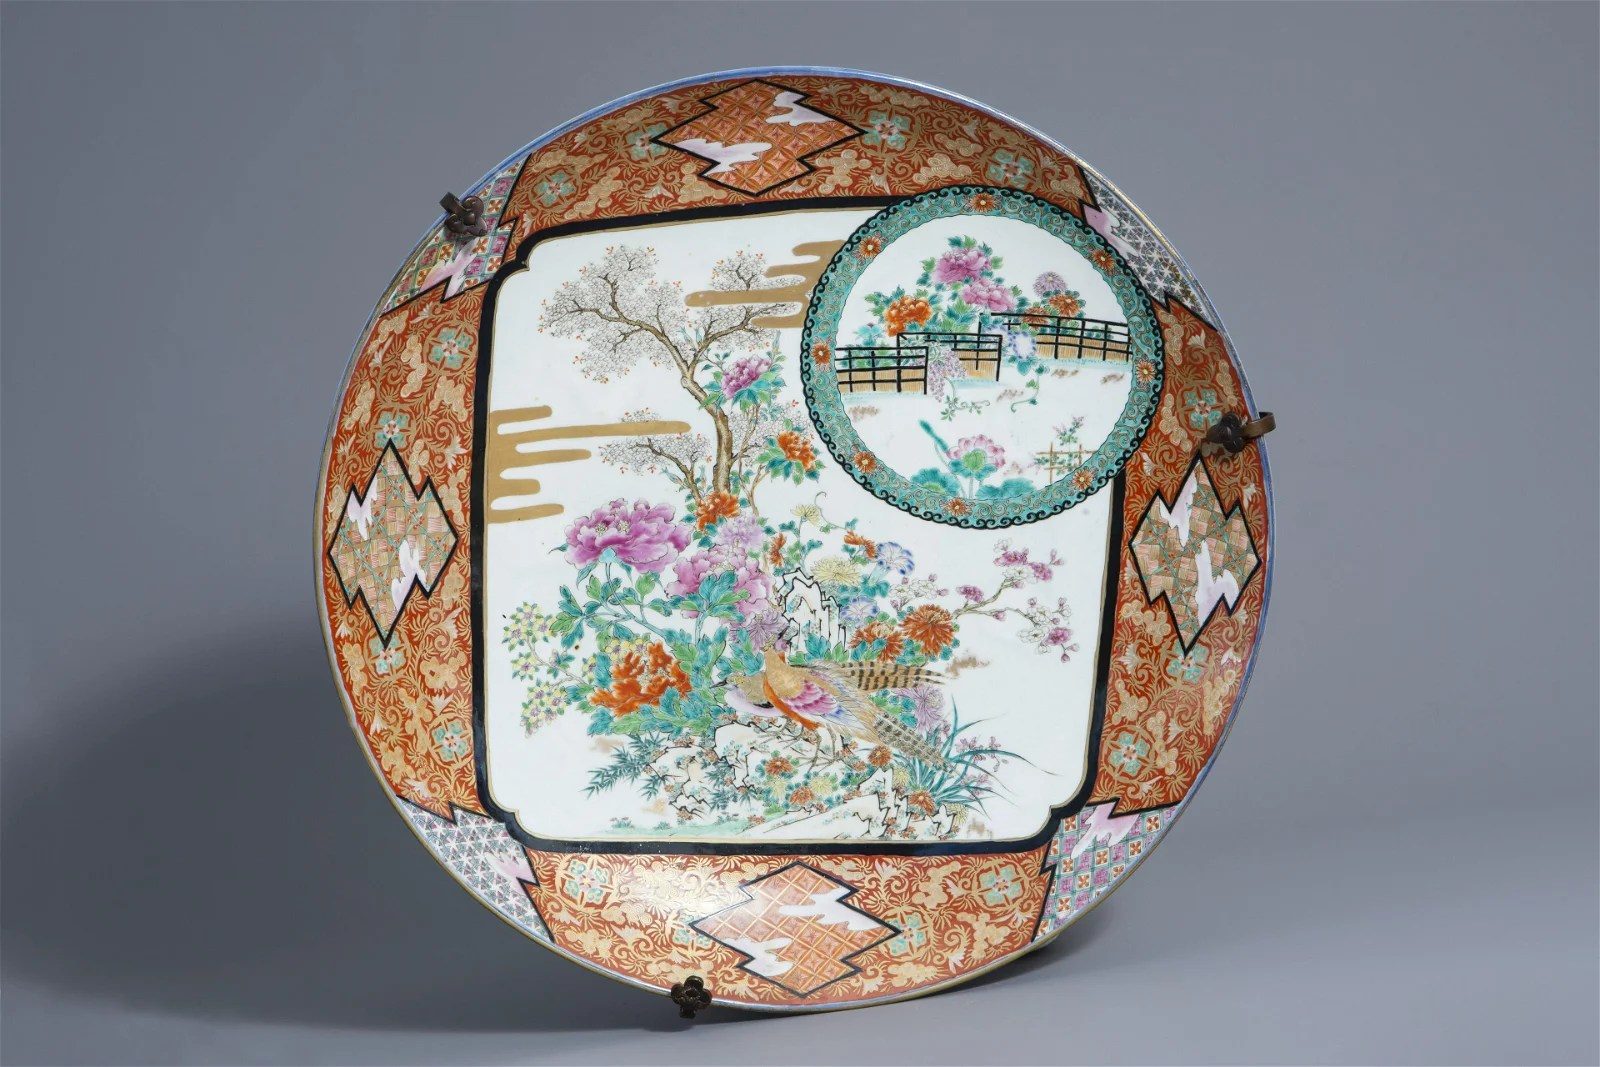 A large Japanese charger with birds on blossoming